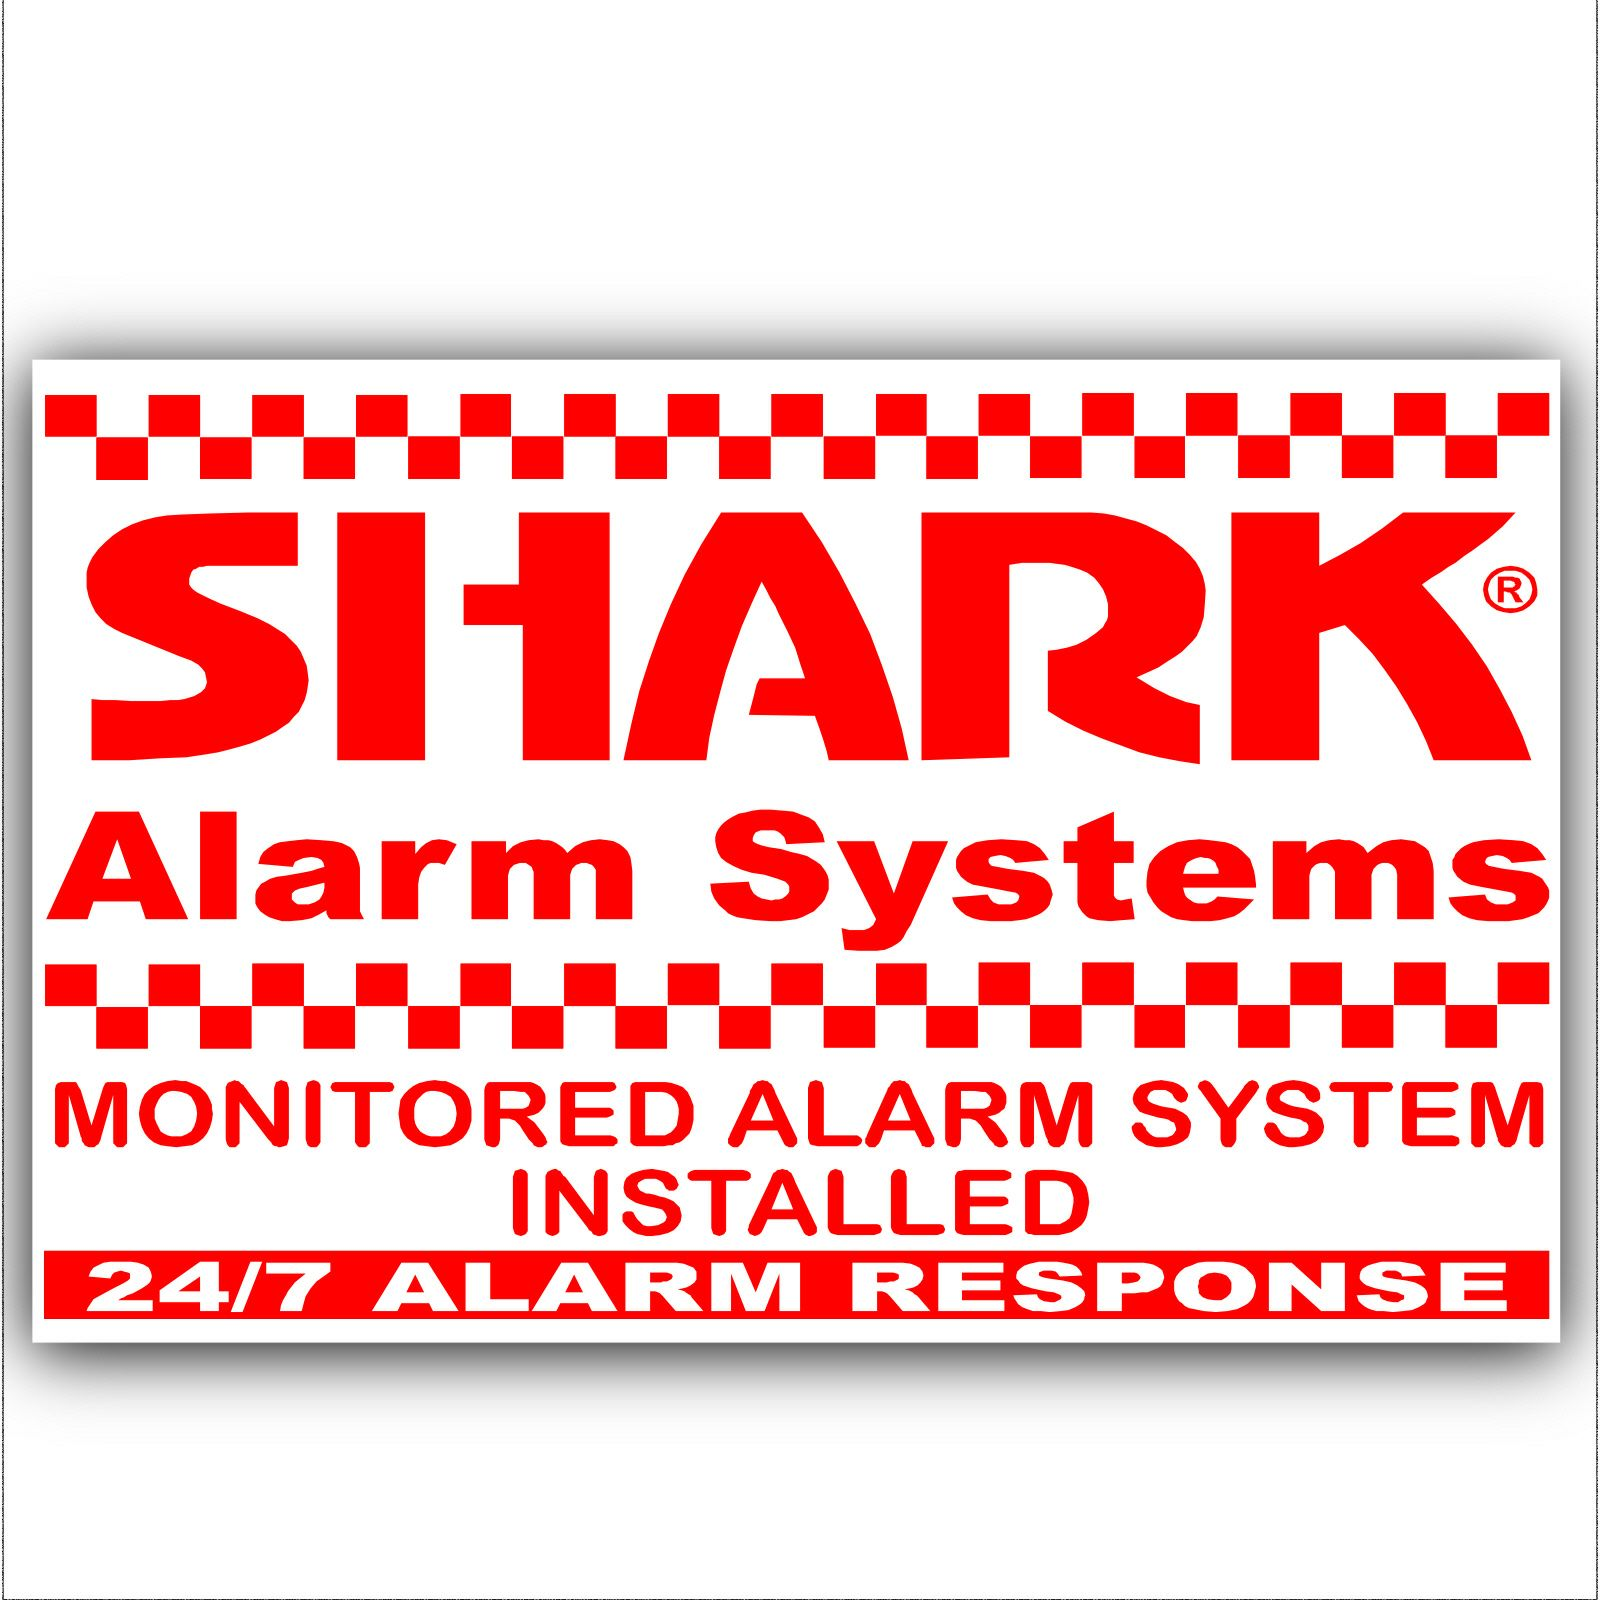 1 x Shark Property Protected Stickers-Red On White-Monitored